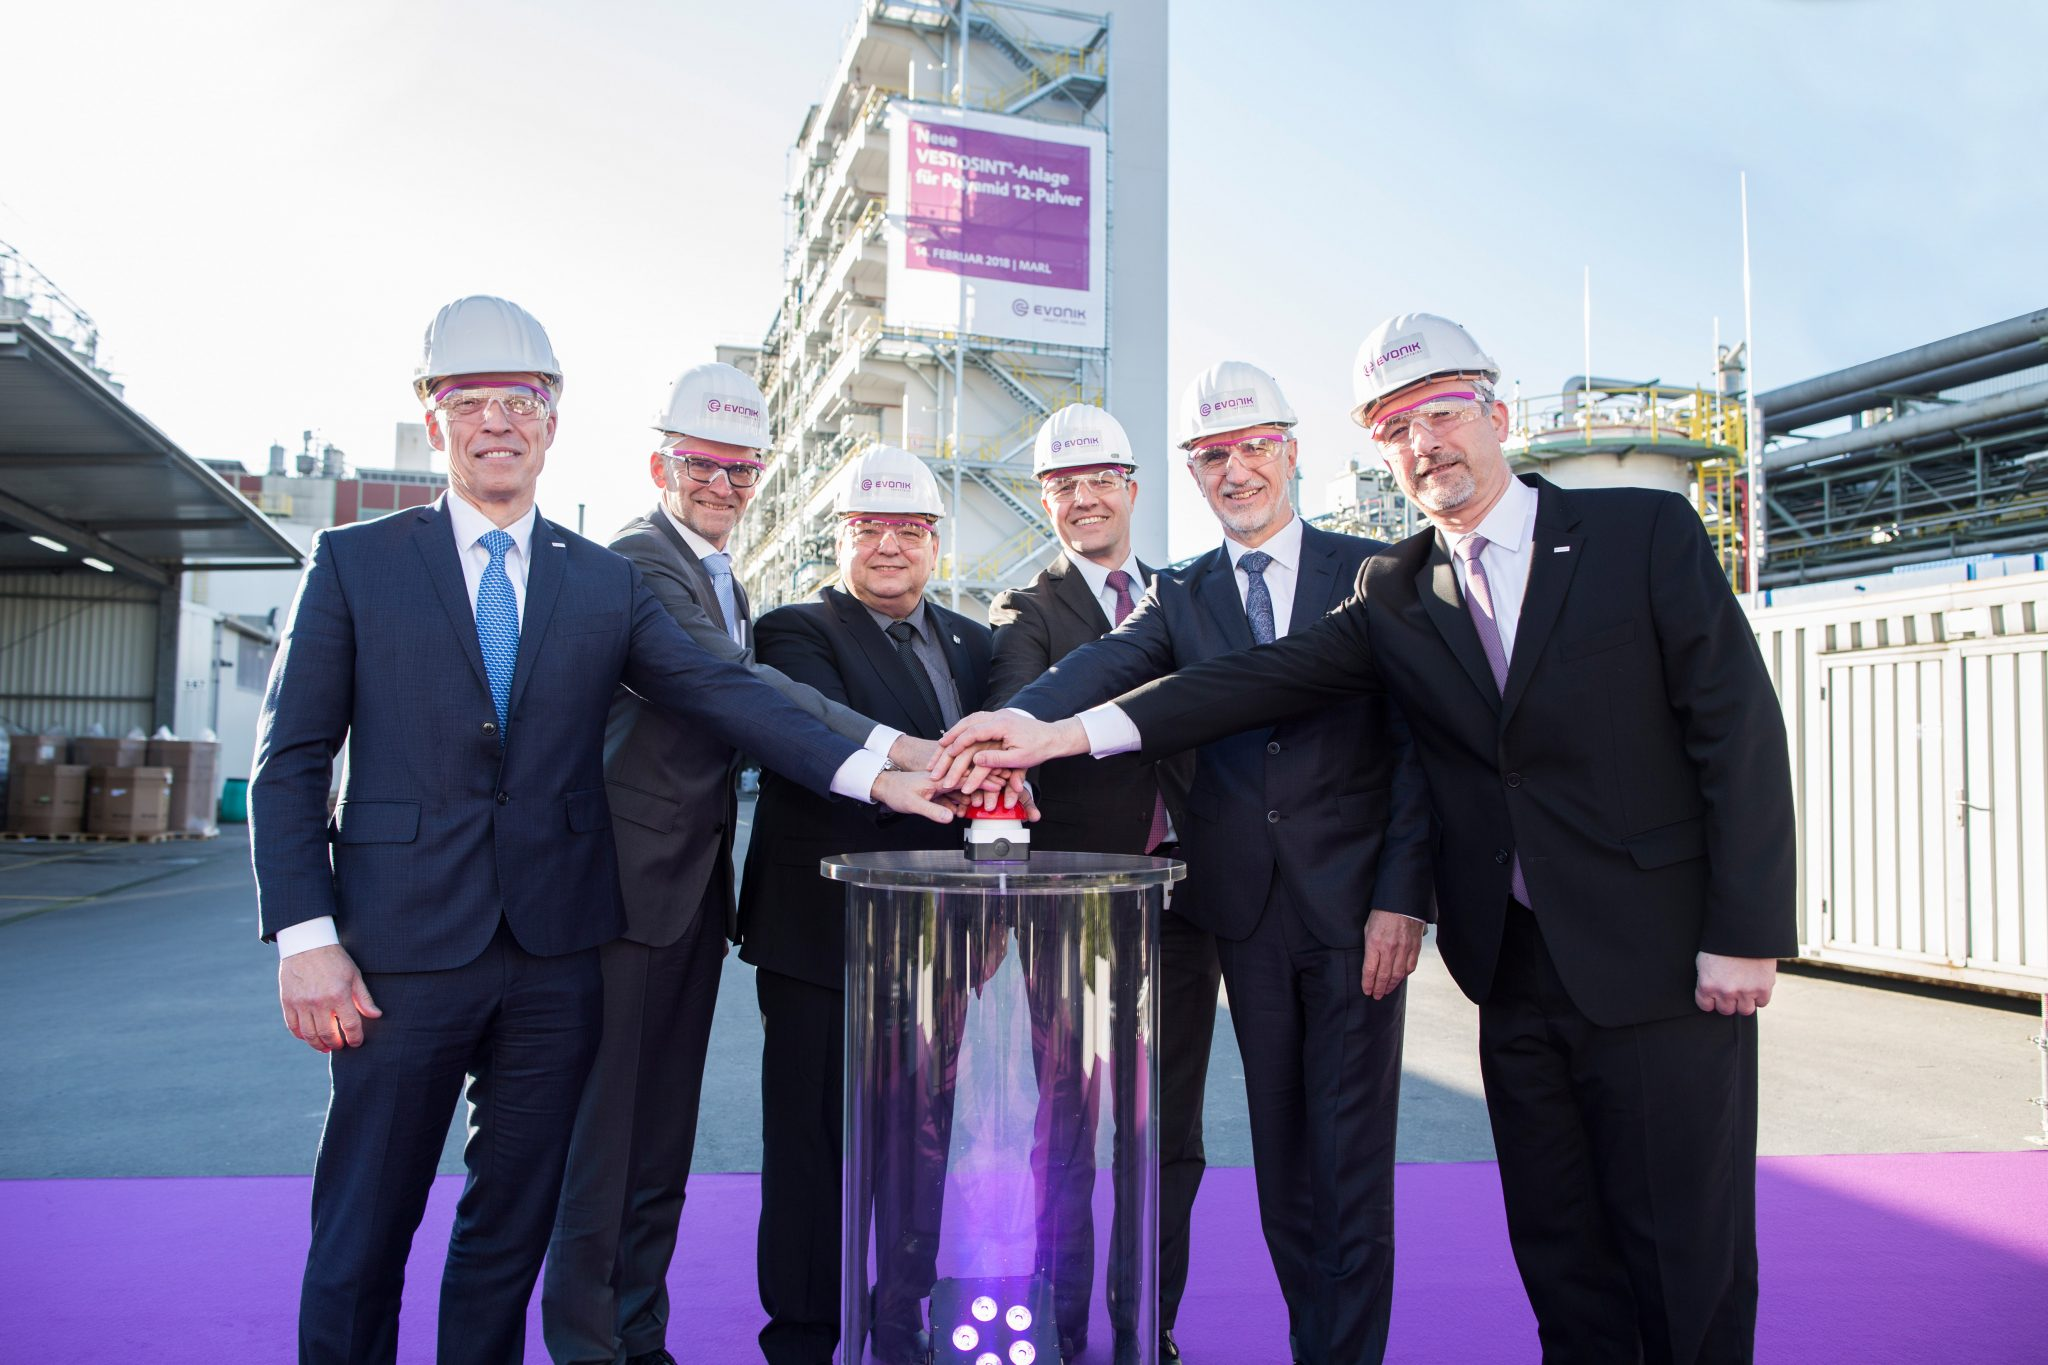 Evonik material production capacity increases by 50% due to 3D